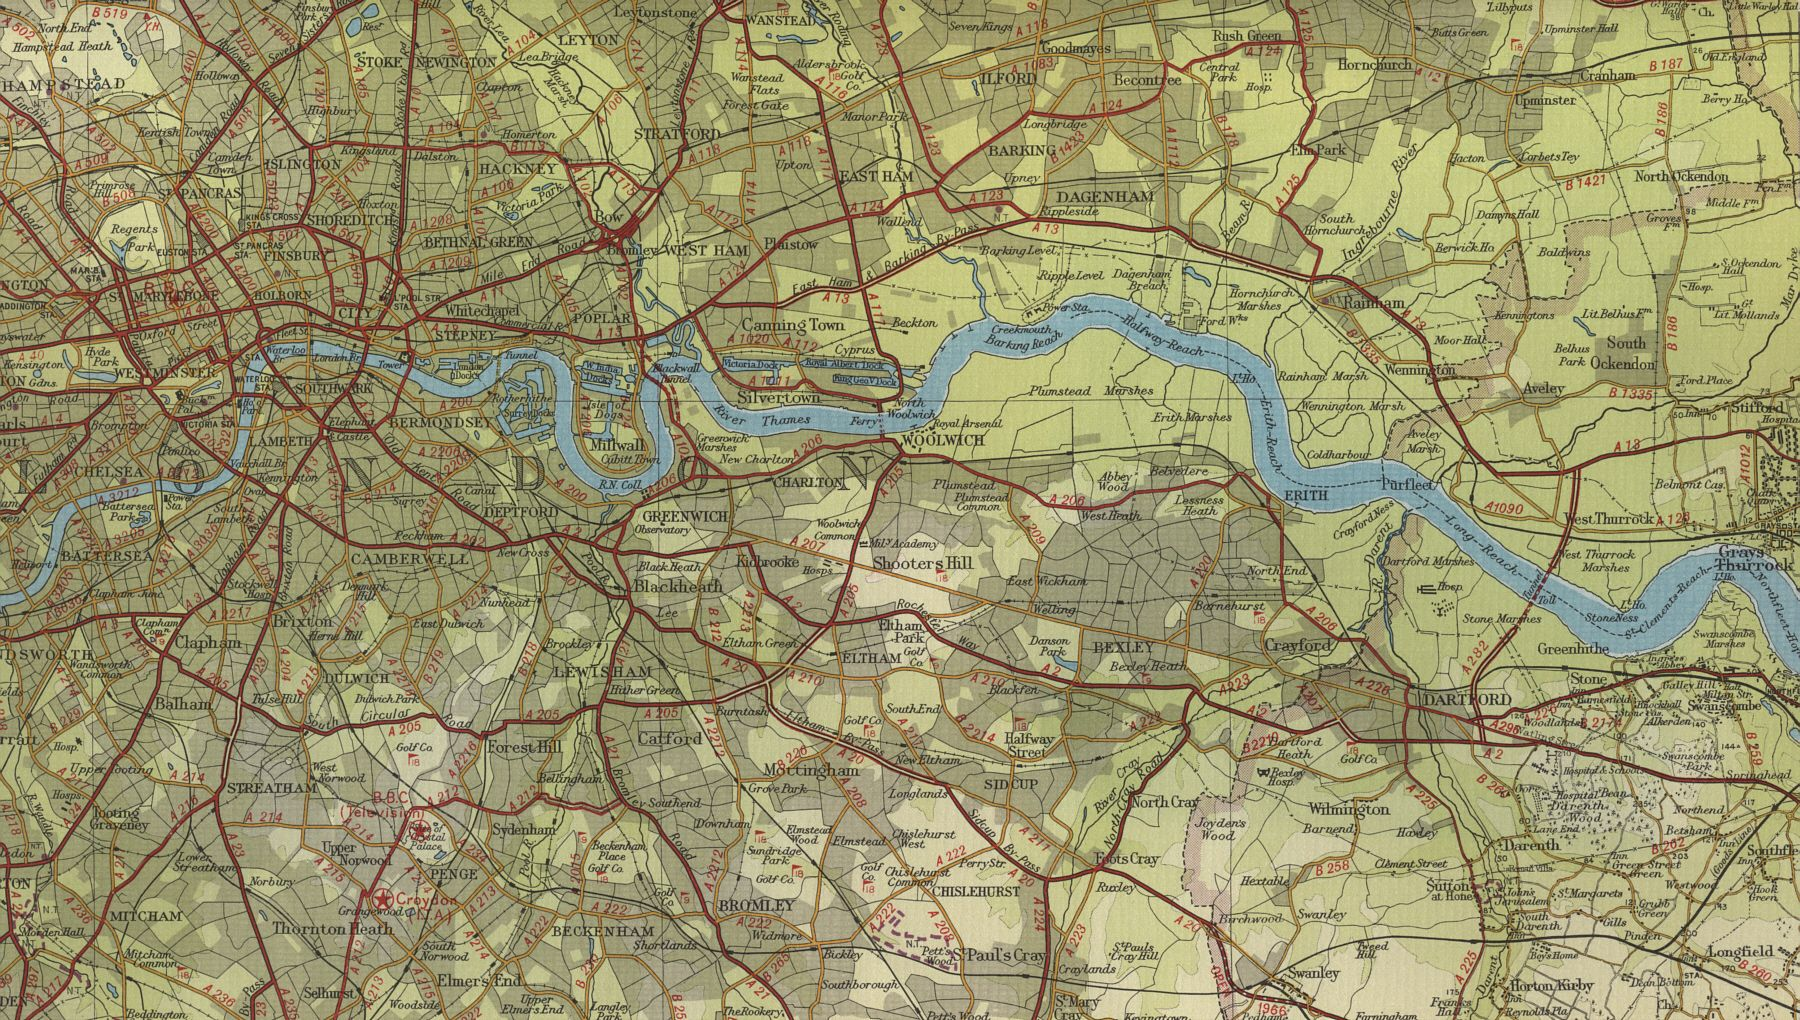 River Thames Map  Ship of Fools research  Pinterest  River